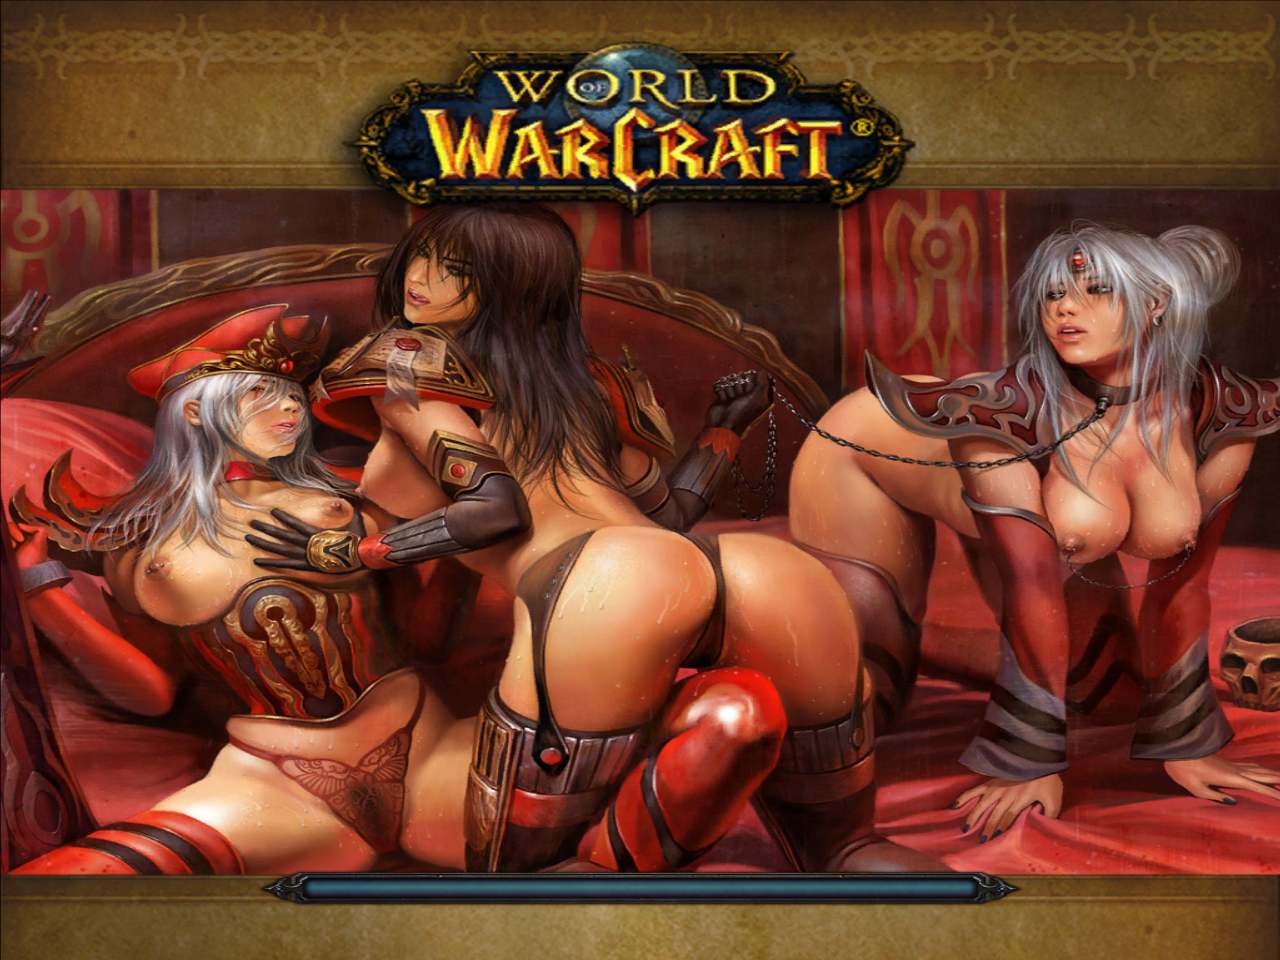 World of warcraft sexy games sexy pics